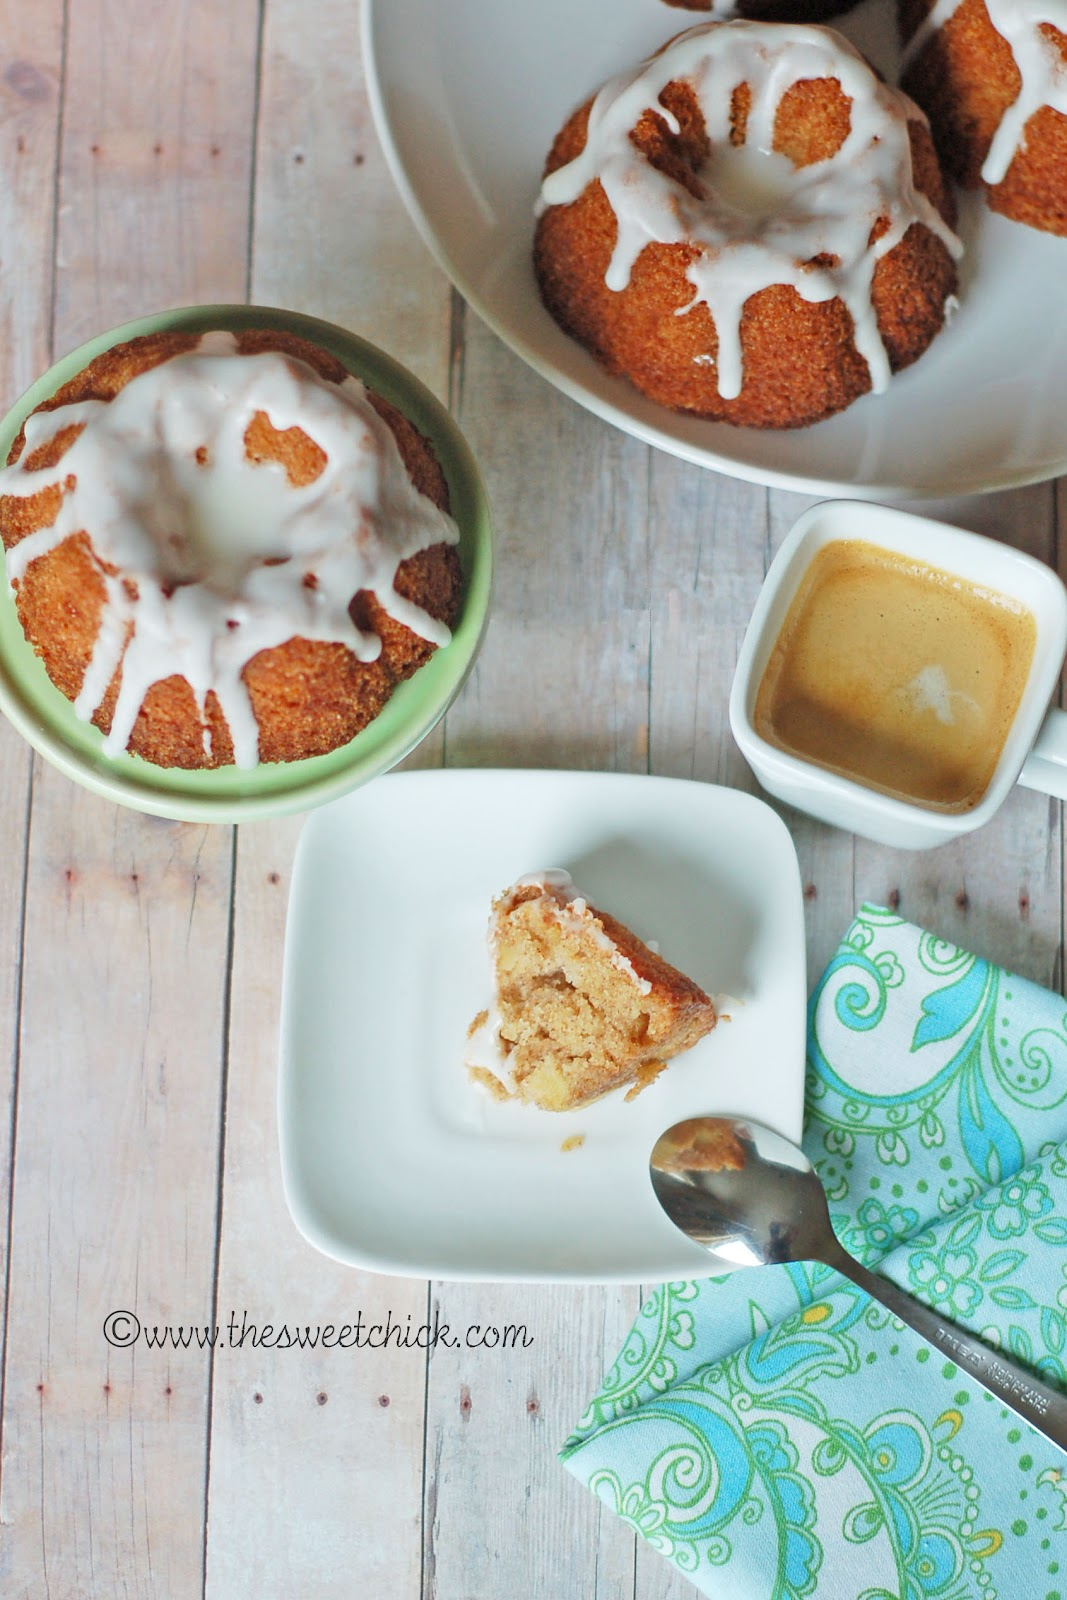 The Sweet Chick: Mom's Apple Cake